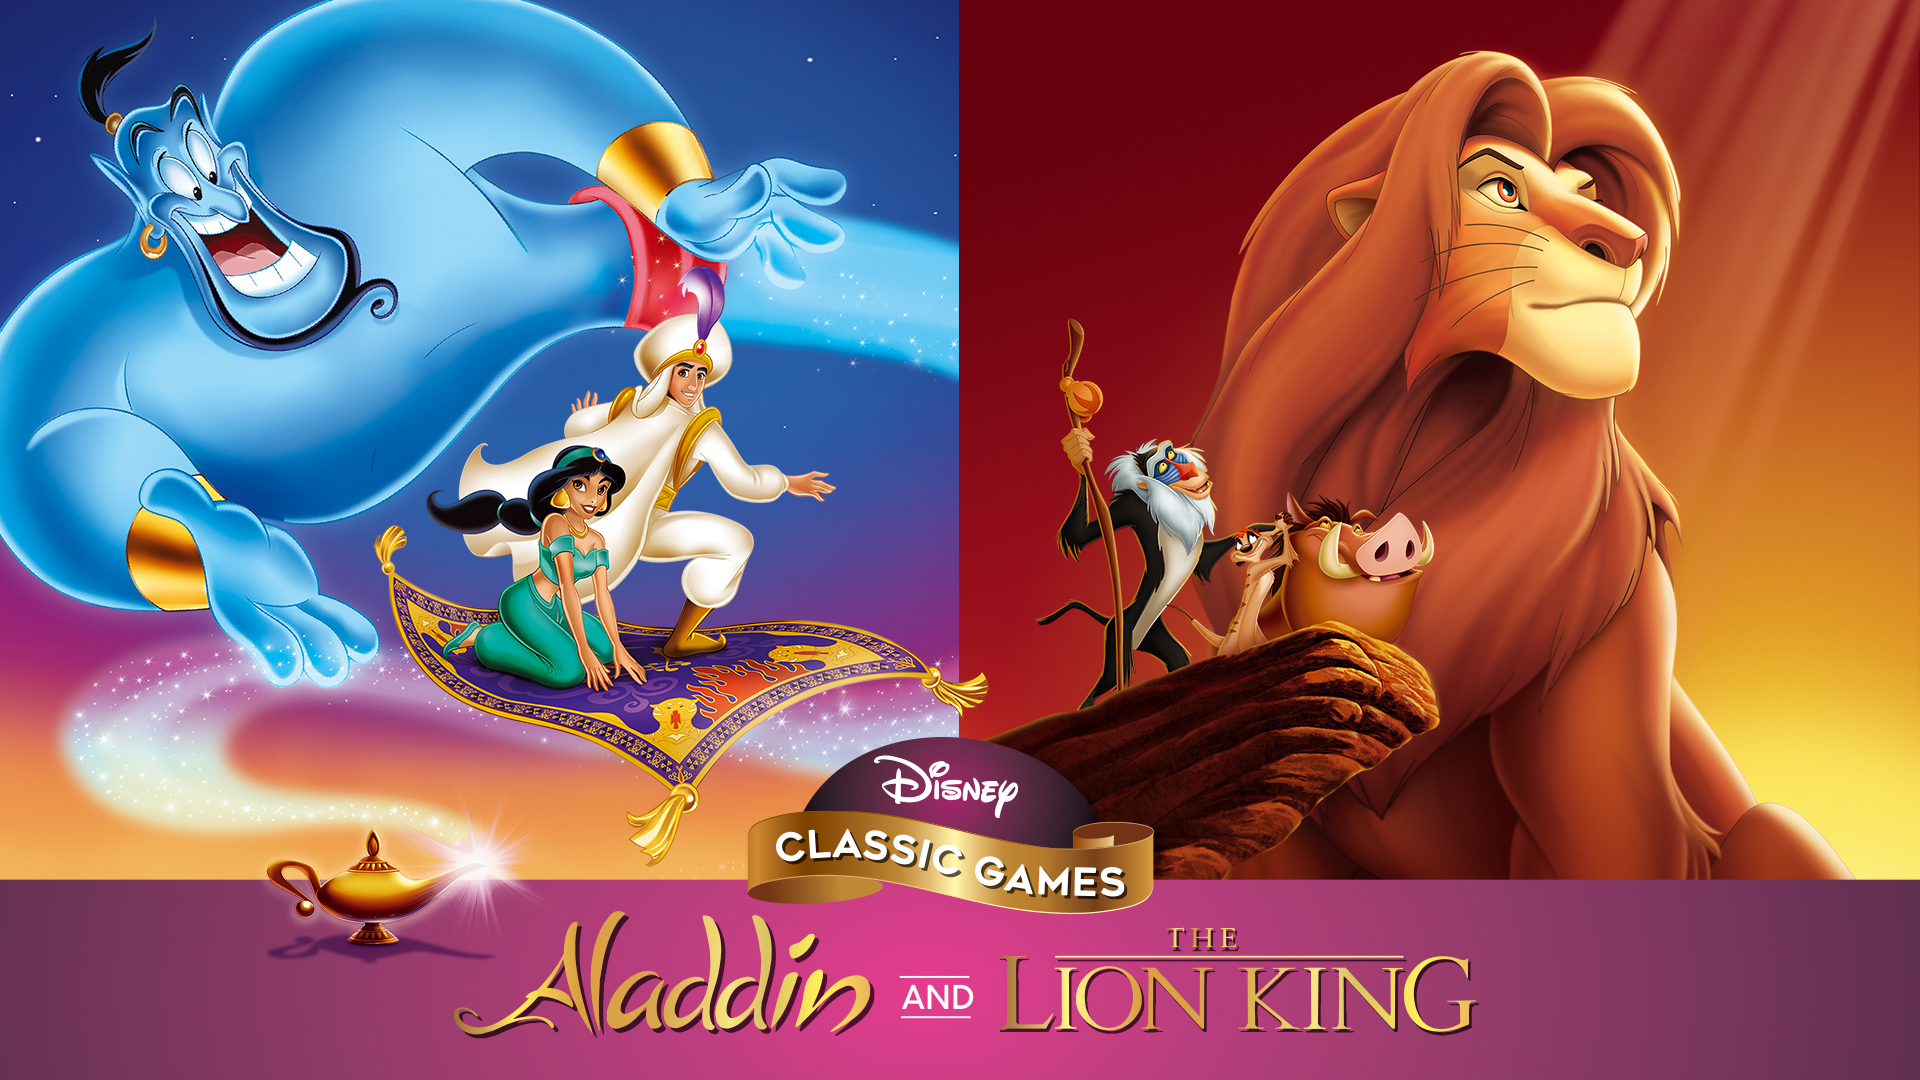 Disney Classic Games: Aladdin and The Lion King – Nintendo Switch Review